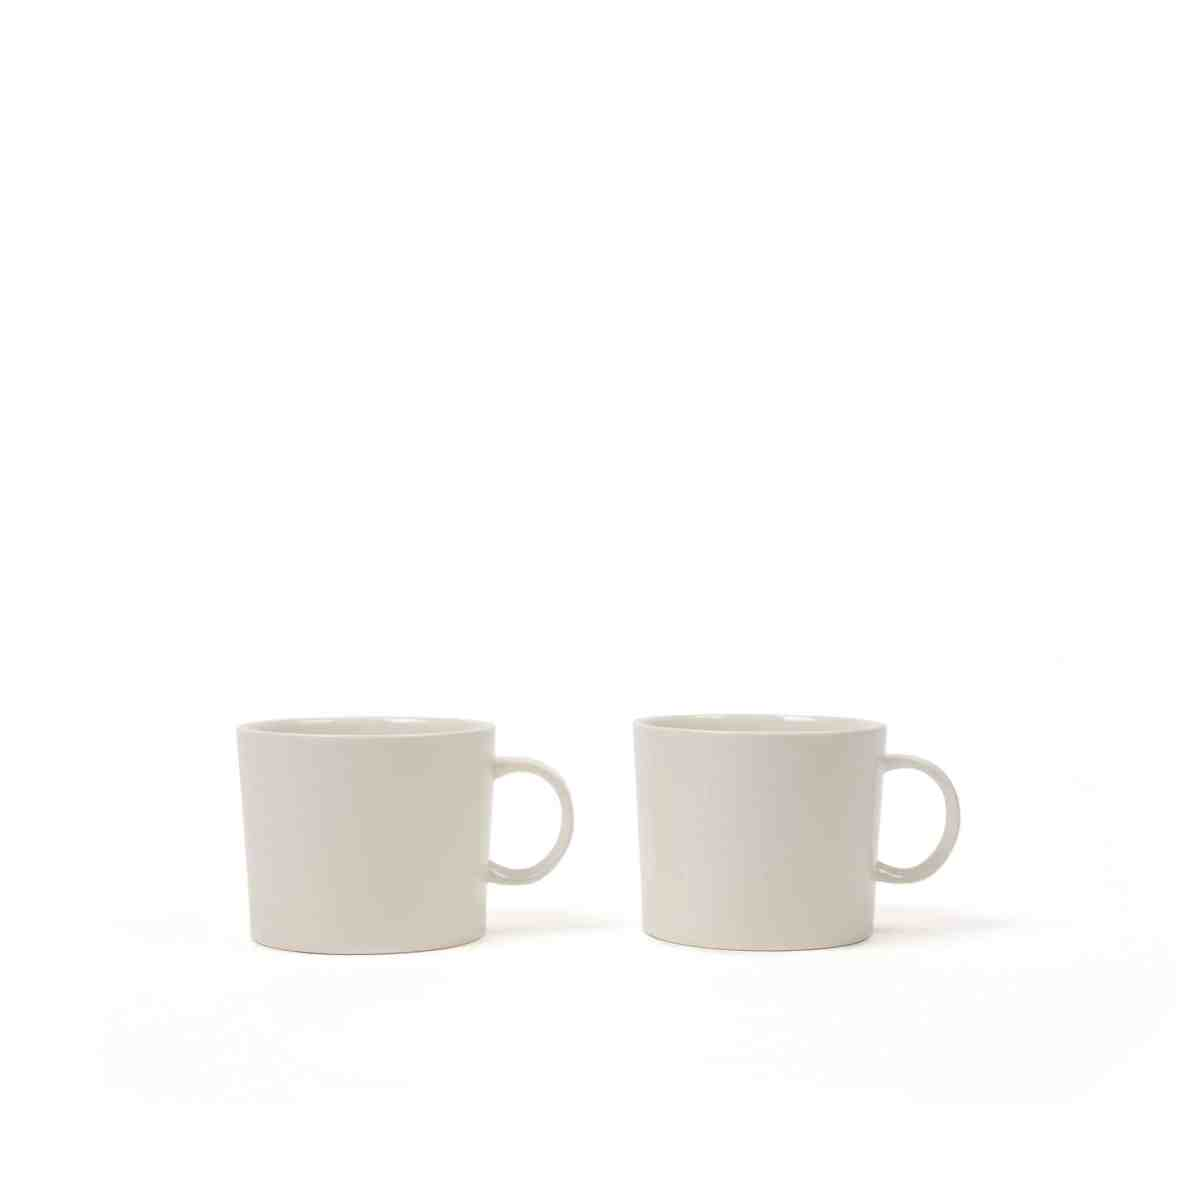 Another-country-pottery-mug-natural-003